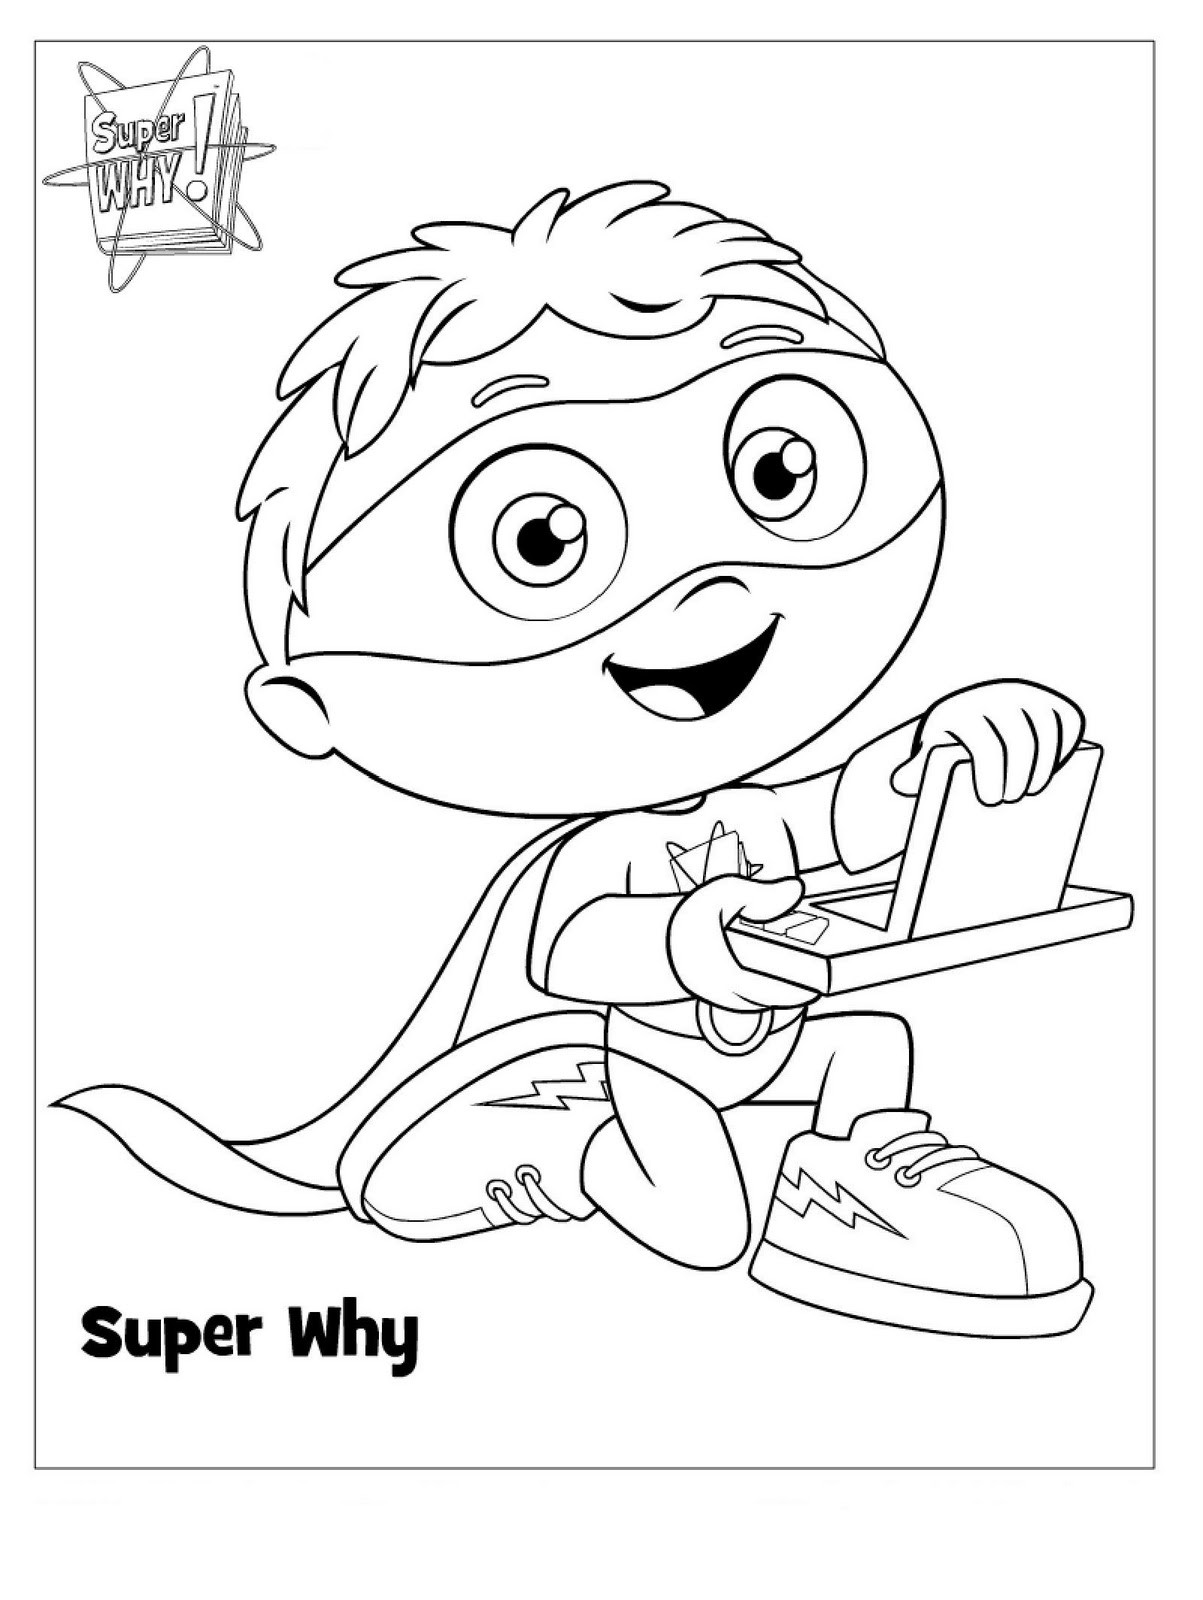 Kids Coloring Sheet  Super Why Coloring Pages Best Coloring Pages For Kids